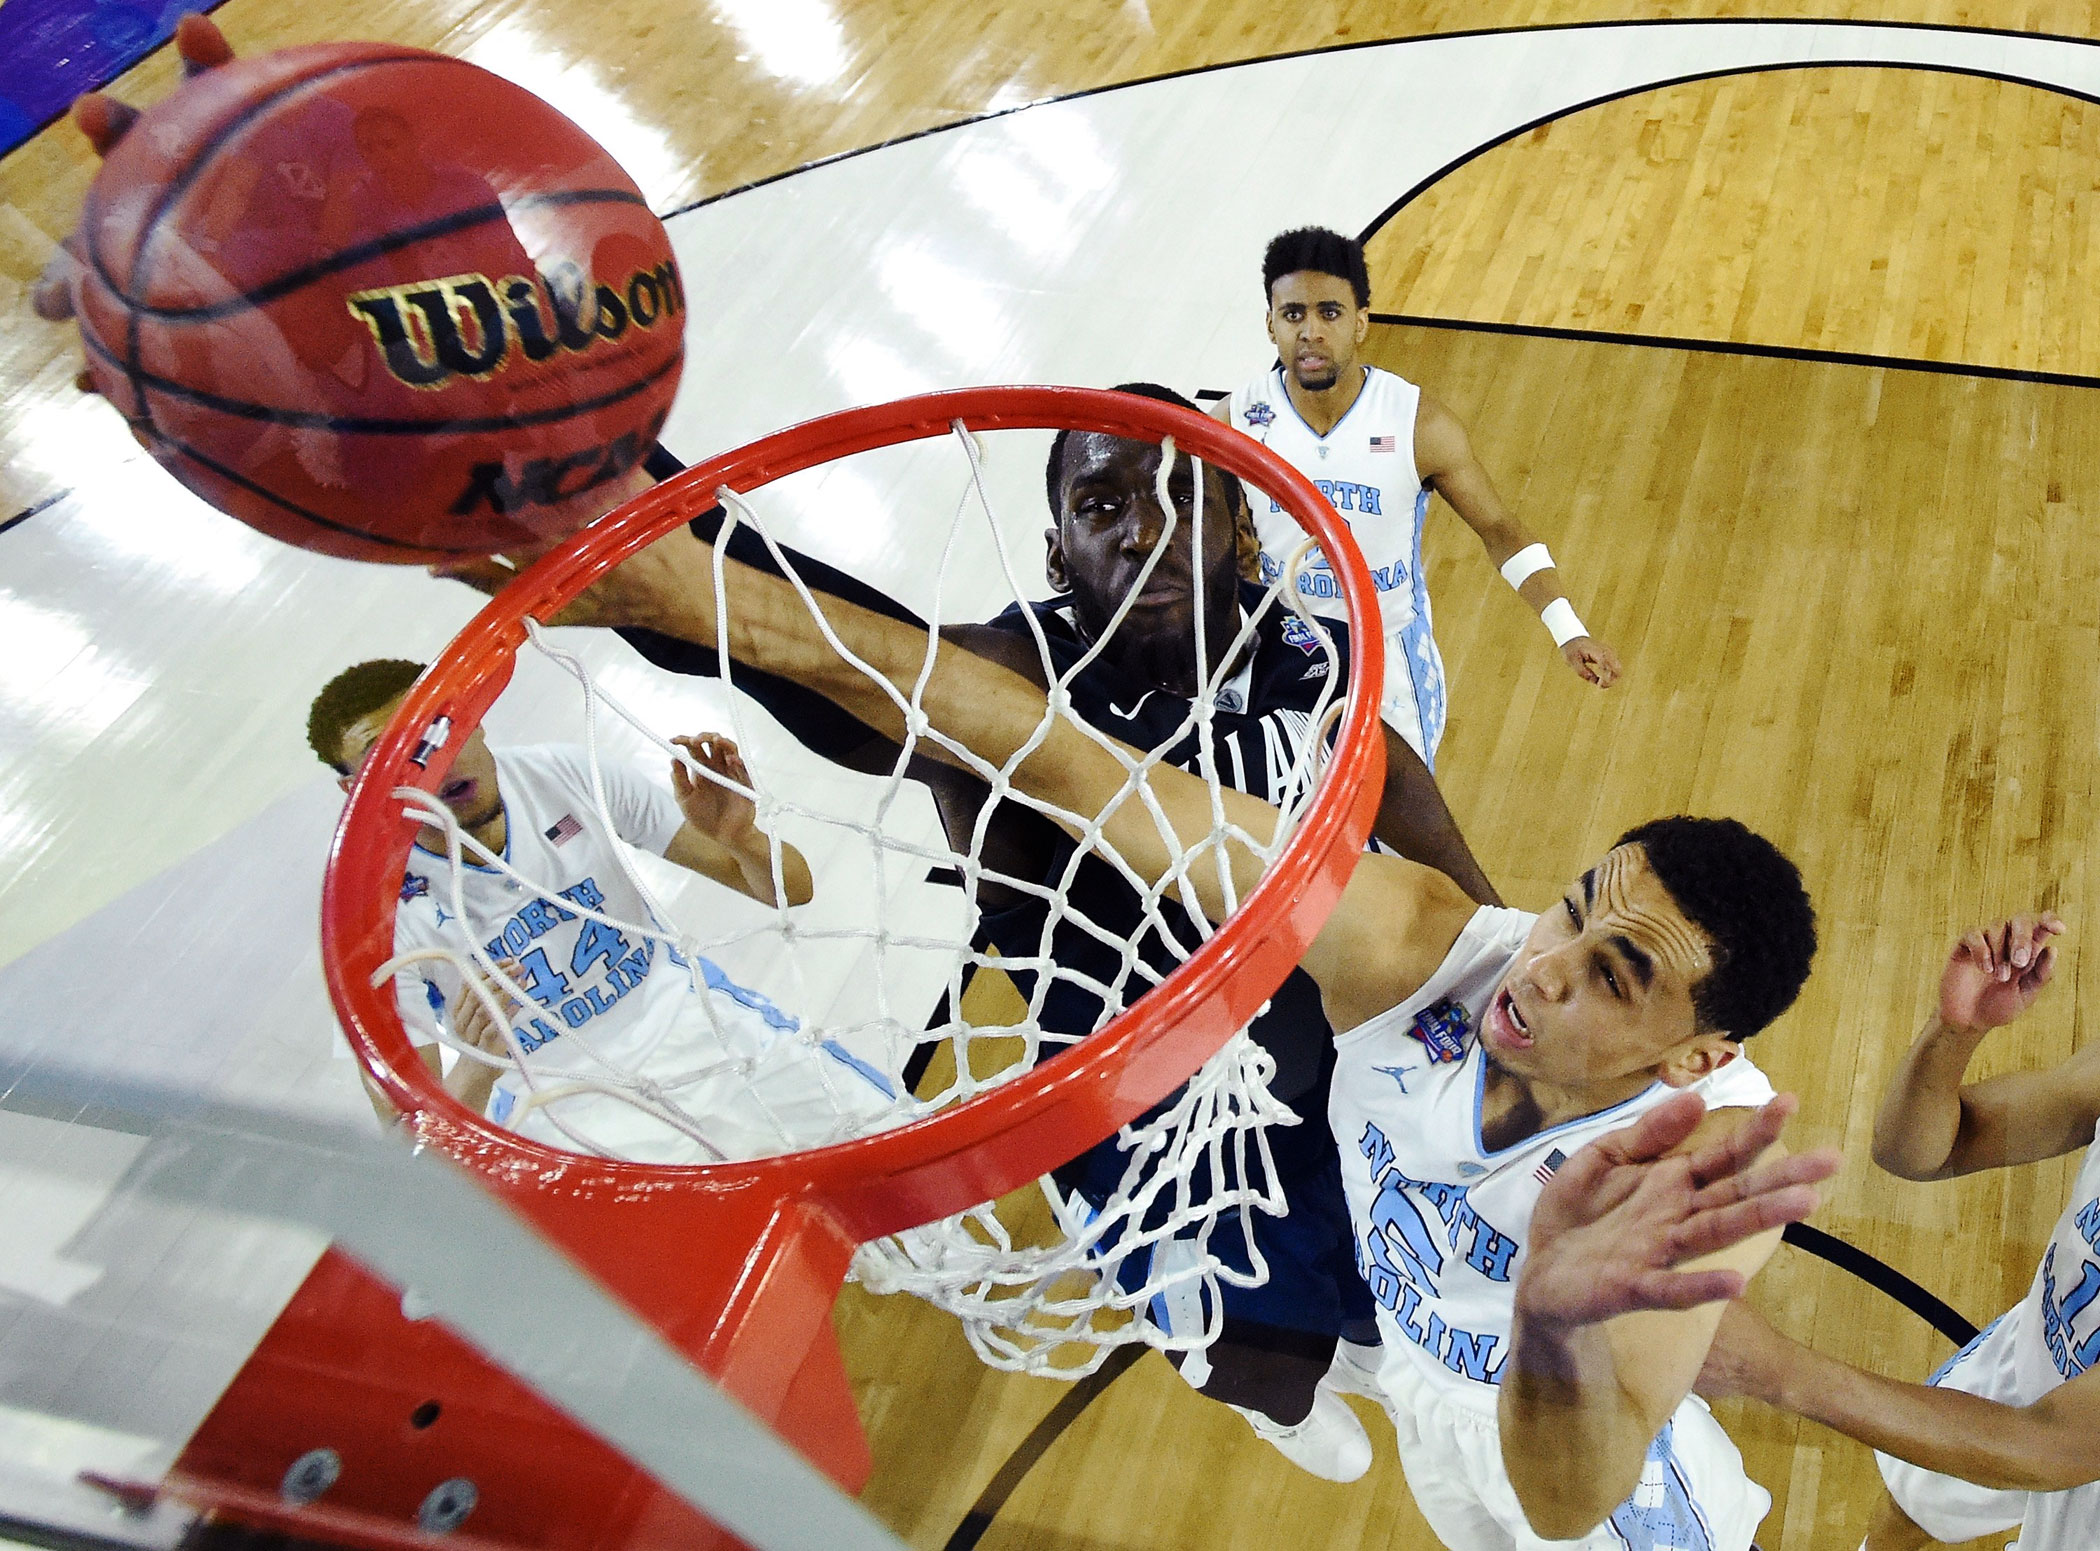 Villanova Wildcats' Daniel Ochefu (23) shoots against  North Carolina Tar Heels' Marcus Paige (5) in the first half of the NCAA college basketball National Championship  game on April 4, 2016 in Houston.